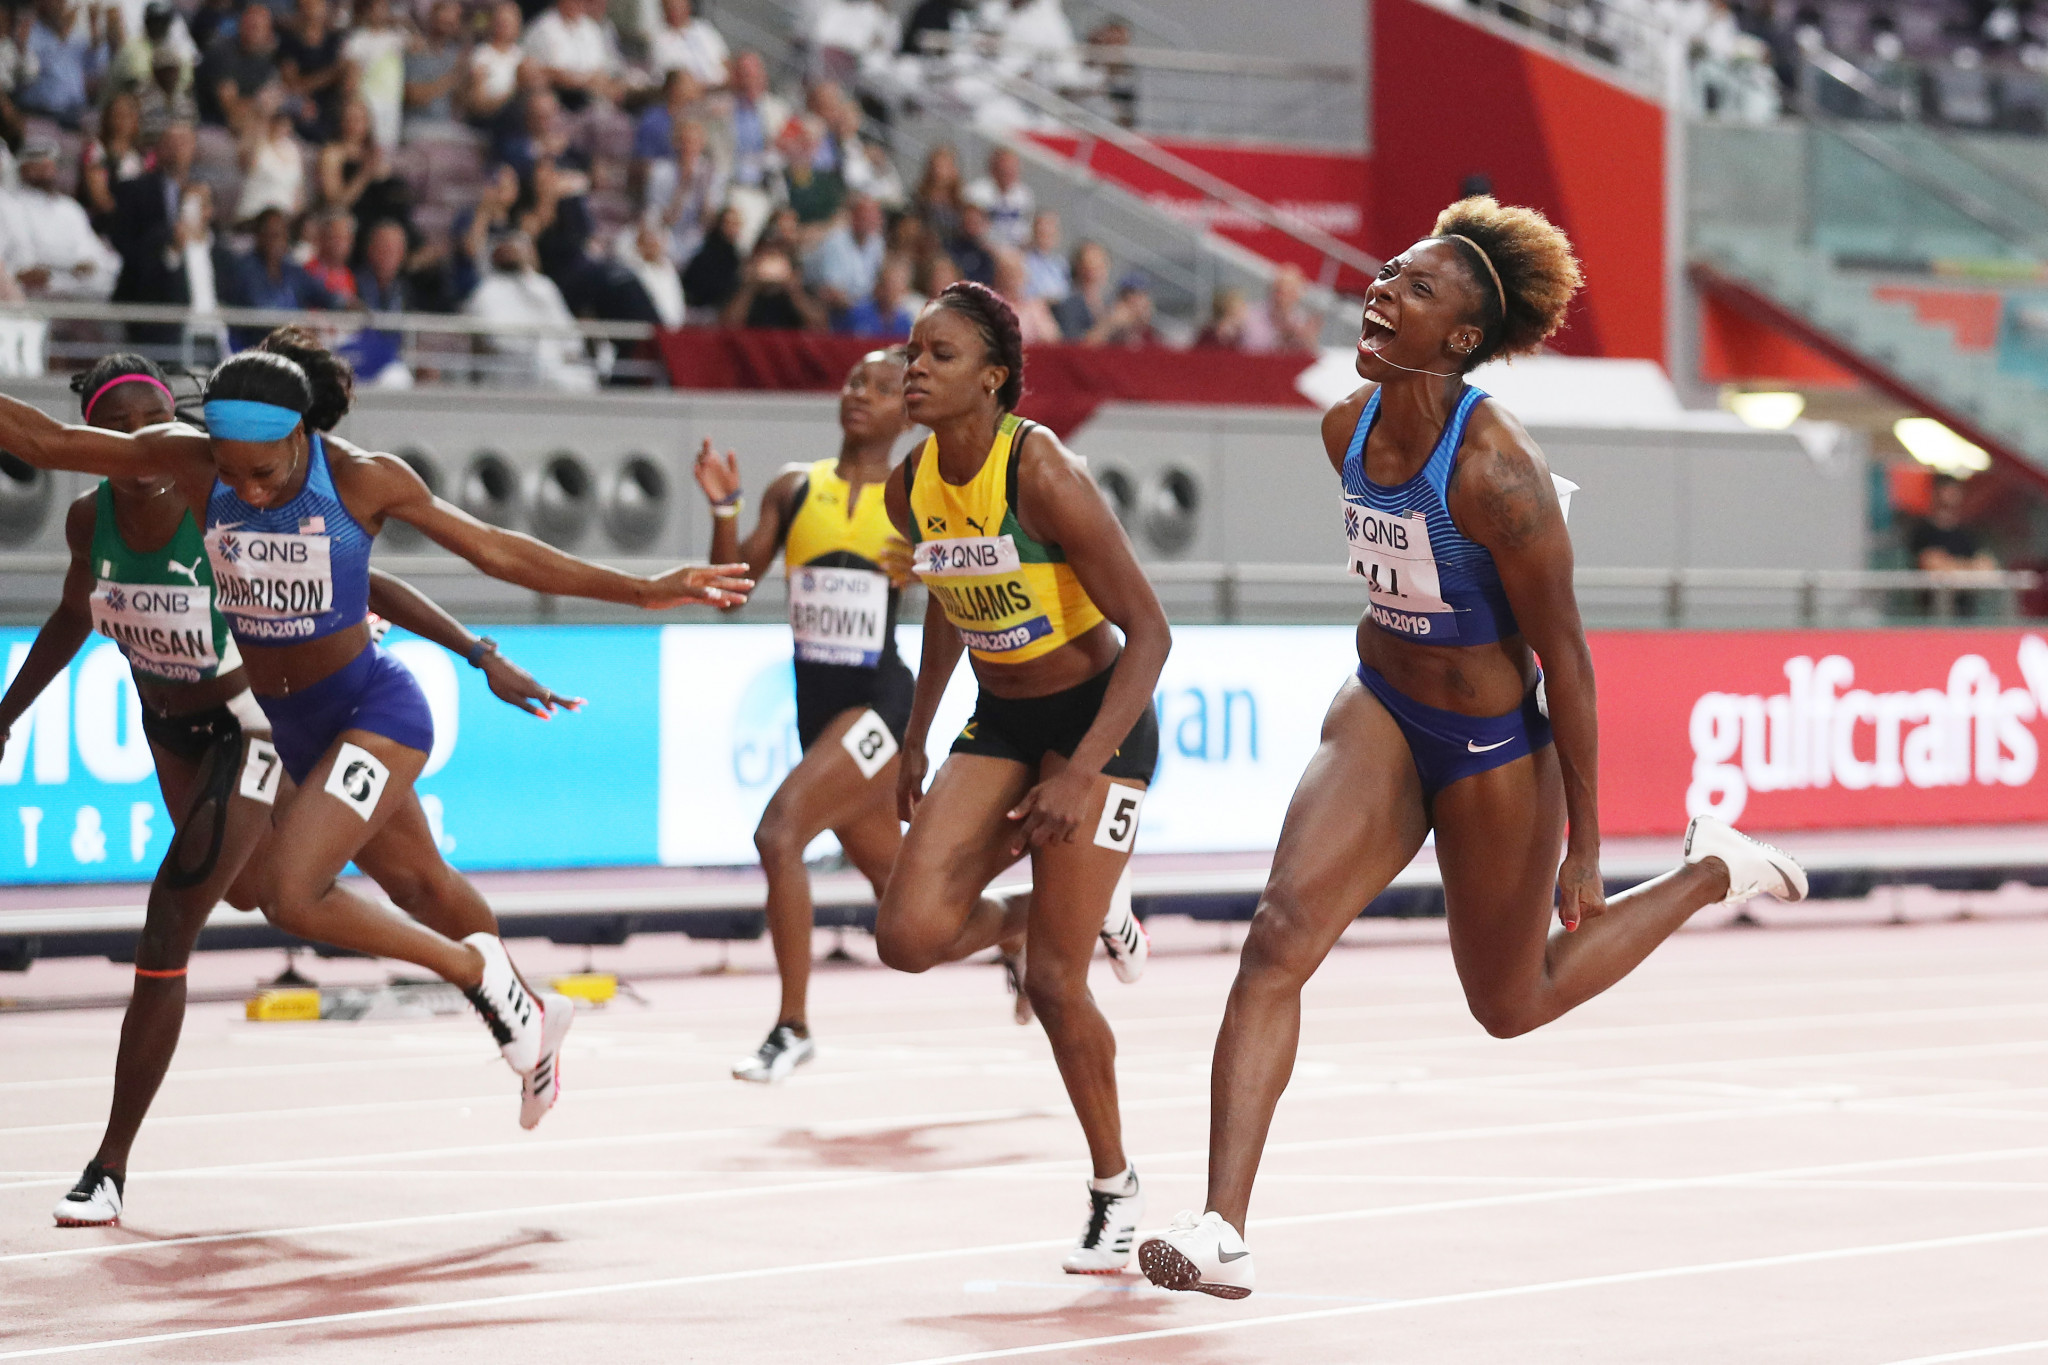 Nia Ali of the United States was a surprise winner of the women's 100m hurdles ©Getty Images